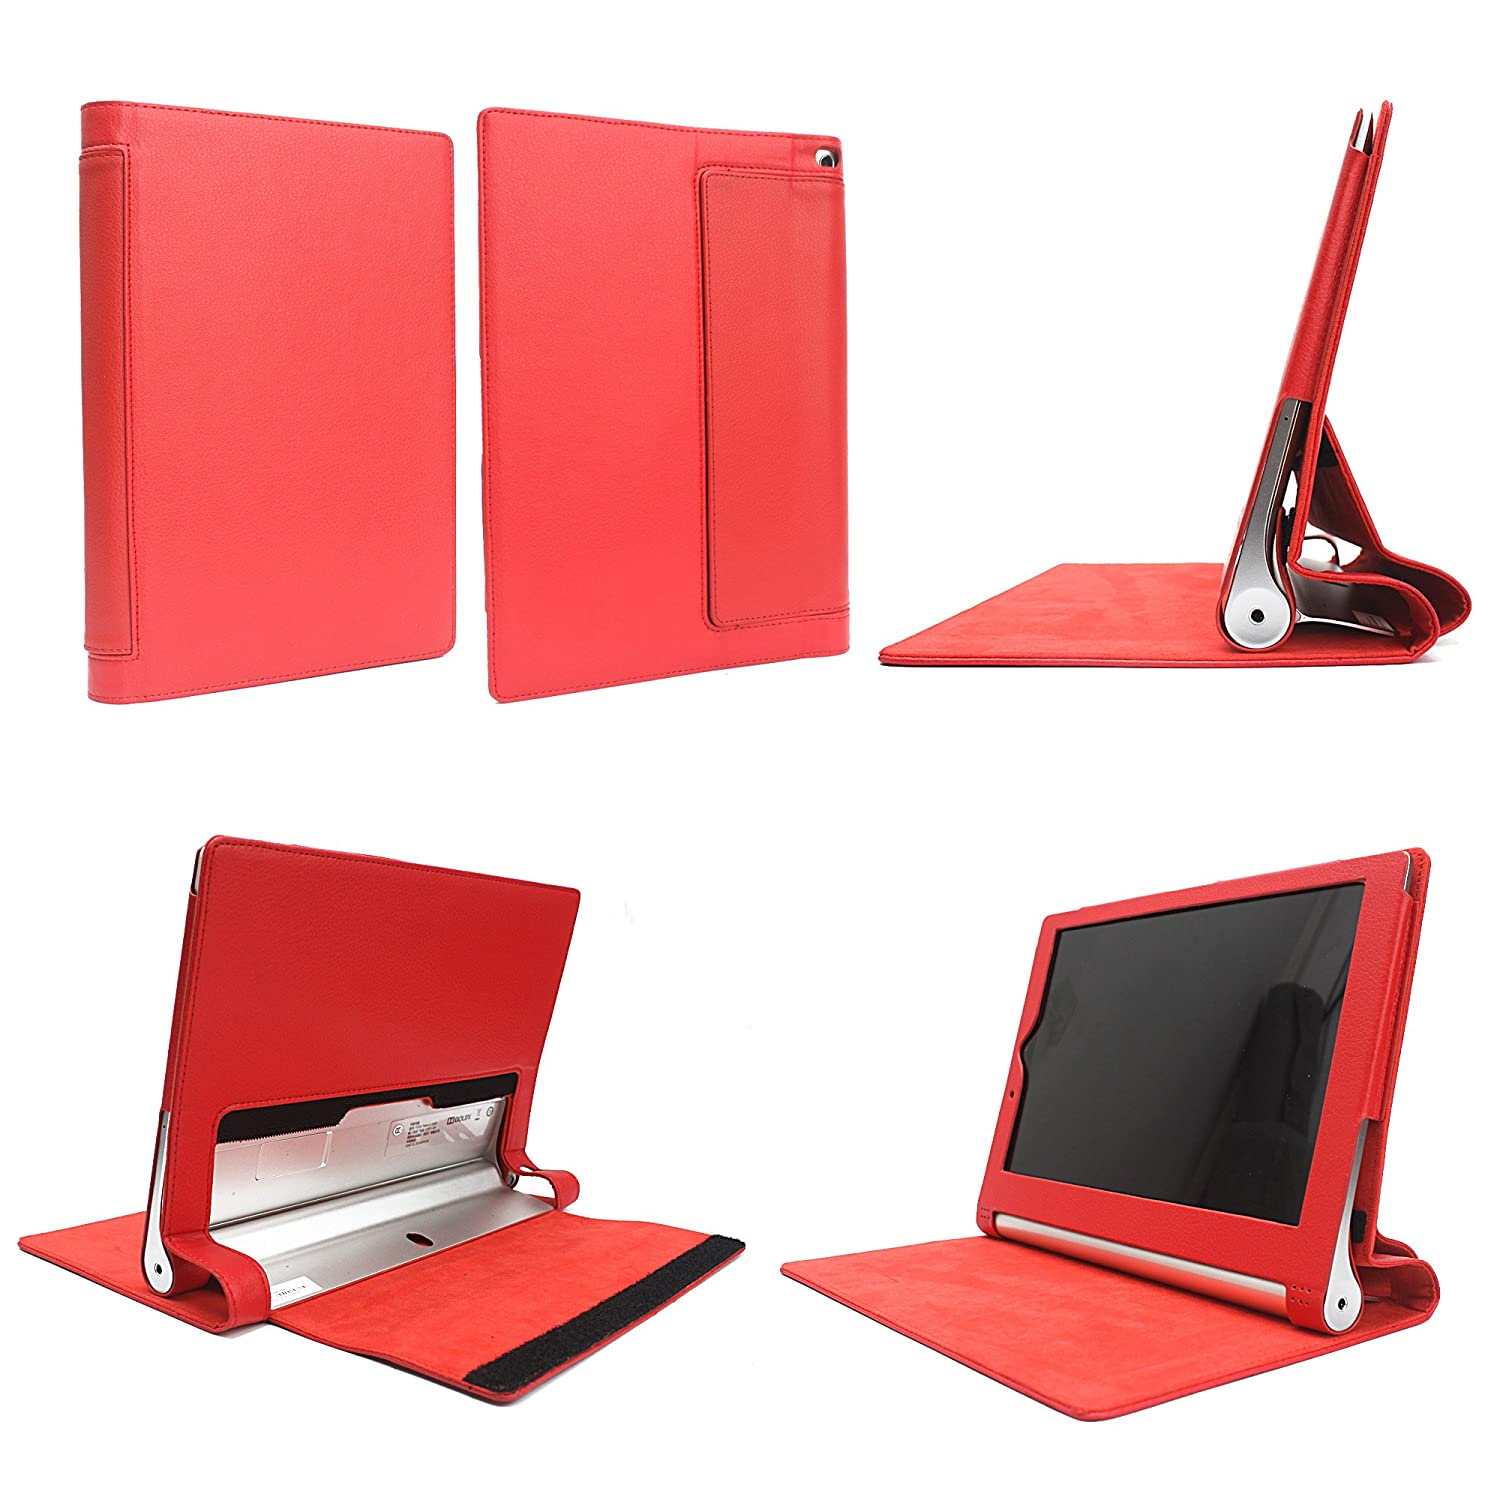 Premium funda de cuero con soporte Modo de Suspensión Para Lenovo Yoga Tablet2 10 (NOT fit Lenovo IdeaPad Yoga Tablet 10, 1st Gen or Lenovo IdeaPad ...